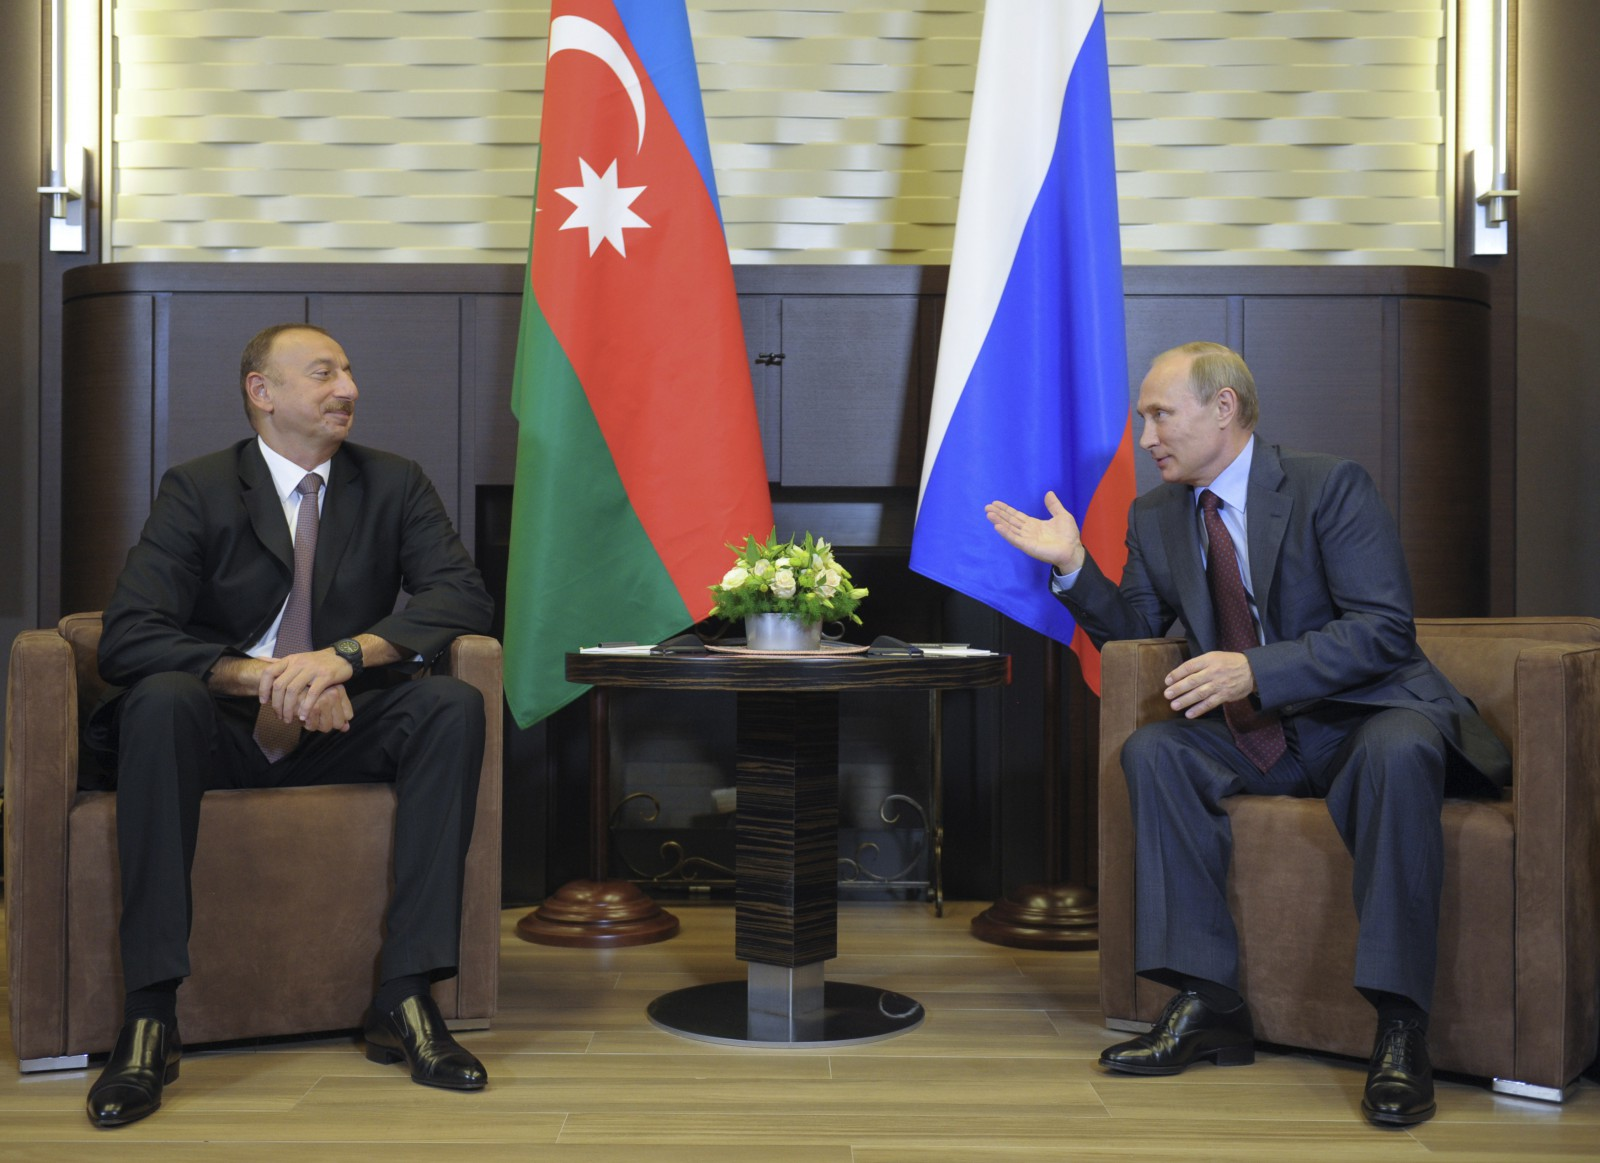 Russia's President Vladimir Putin (R) talks to Azerbaijan's President Ilham Aliyev during their meeting in Sochi, August 9, 2014. Azerbaijan and Armenia accused each other on Monday of stoking tensions over the breakaway enclave of Nagorno-Karabakh inside Azerbaijan after a recurrence of fighting last week, although Yerevan said there was no immediate threat of war. The presidents of Armenia and Azerbaijan, both former Soviet republics, are expected to meet in the Russian Caucasus city of Sochi to discuss ways to resolve the conflict. REUTERS/Alexei Druzhinin/RIA Novosti/Kremlin (RUSSIA - Tags: POLITICS) ATTENTION EDITORS - THIS IMAGE HAS BEEN SUPPLIED BY A THIRD PARTY. IT IS DISTRIBUTED, EXACTLY AS RECEIVED BY REUTERS, AS A SERVICE TO CLIENTS - RTR41SKU